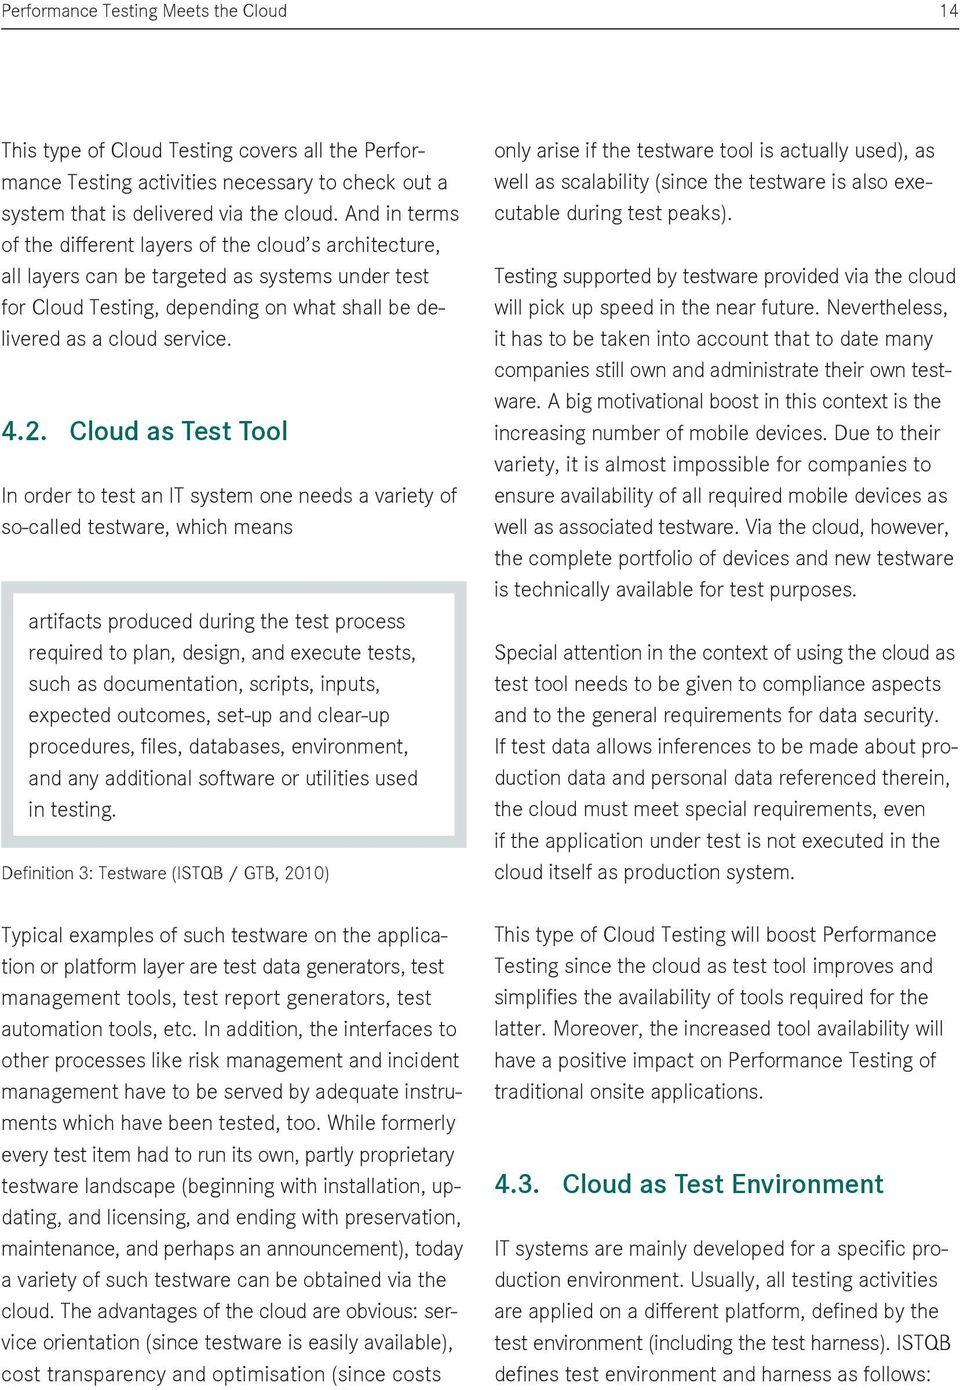 Cloud as Test Tool In order to test an IT system one needs a variety of so-called testware, which means artifacts produced during the test process required to plan, design, and execute tests, such as